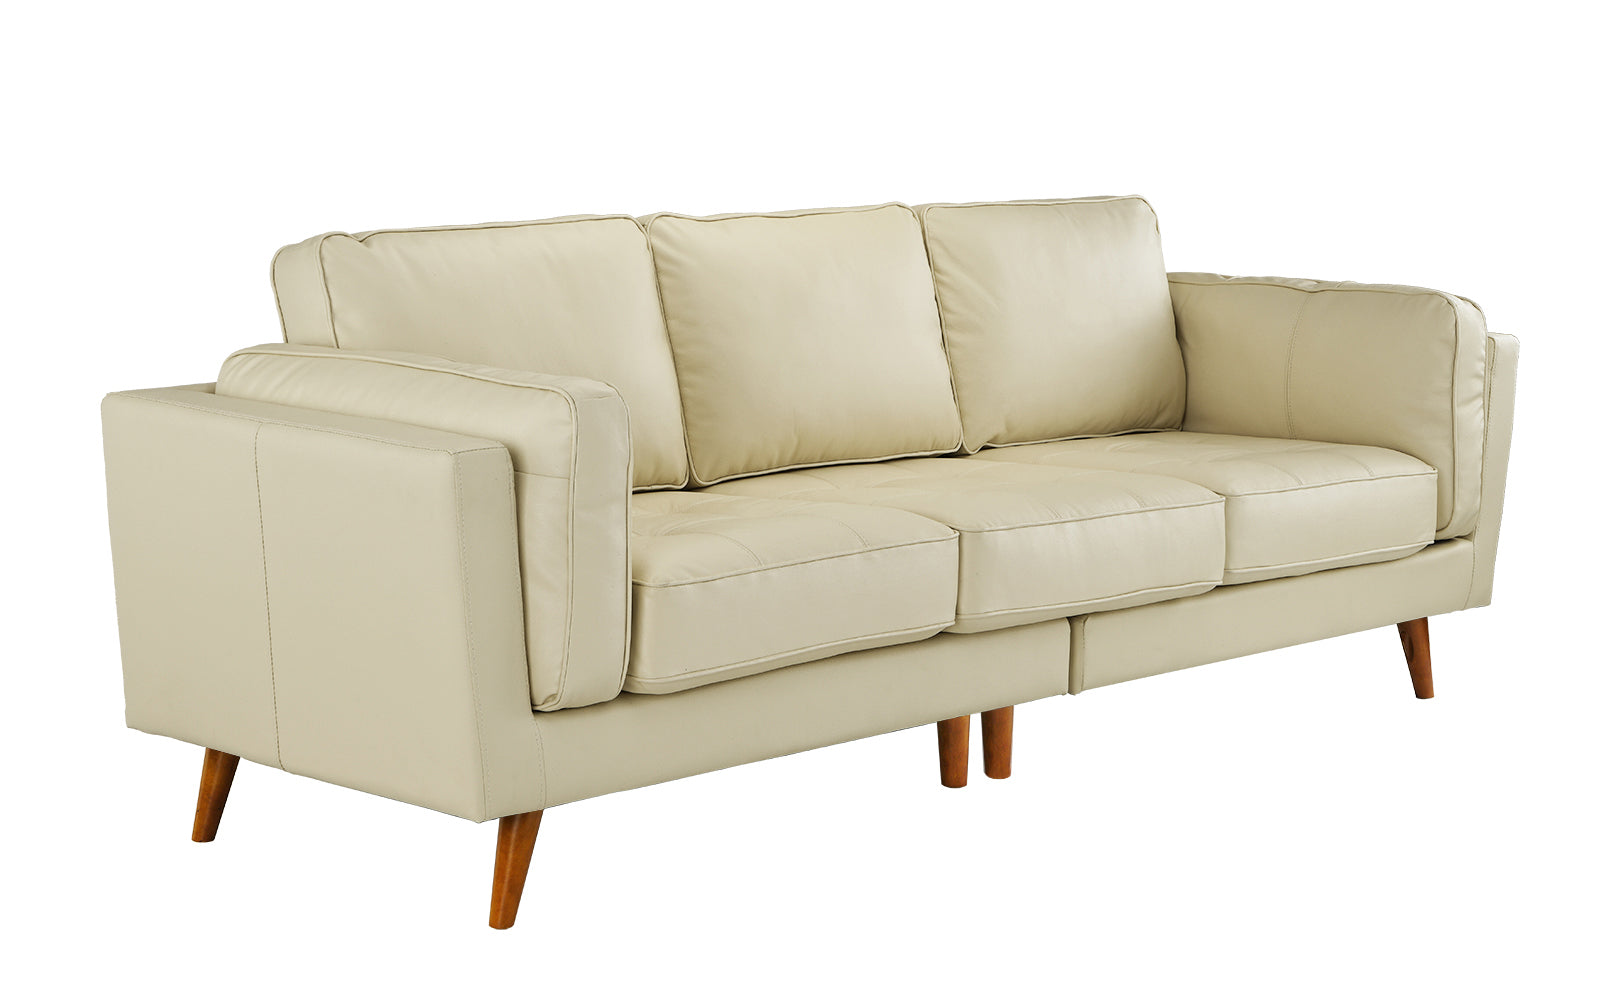 Mateo Mid-Century Palm Springs Style Leather Match Sofa